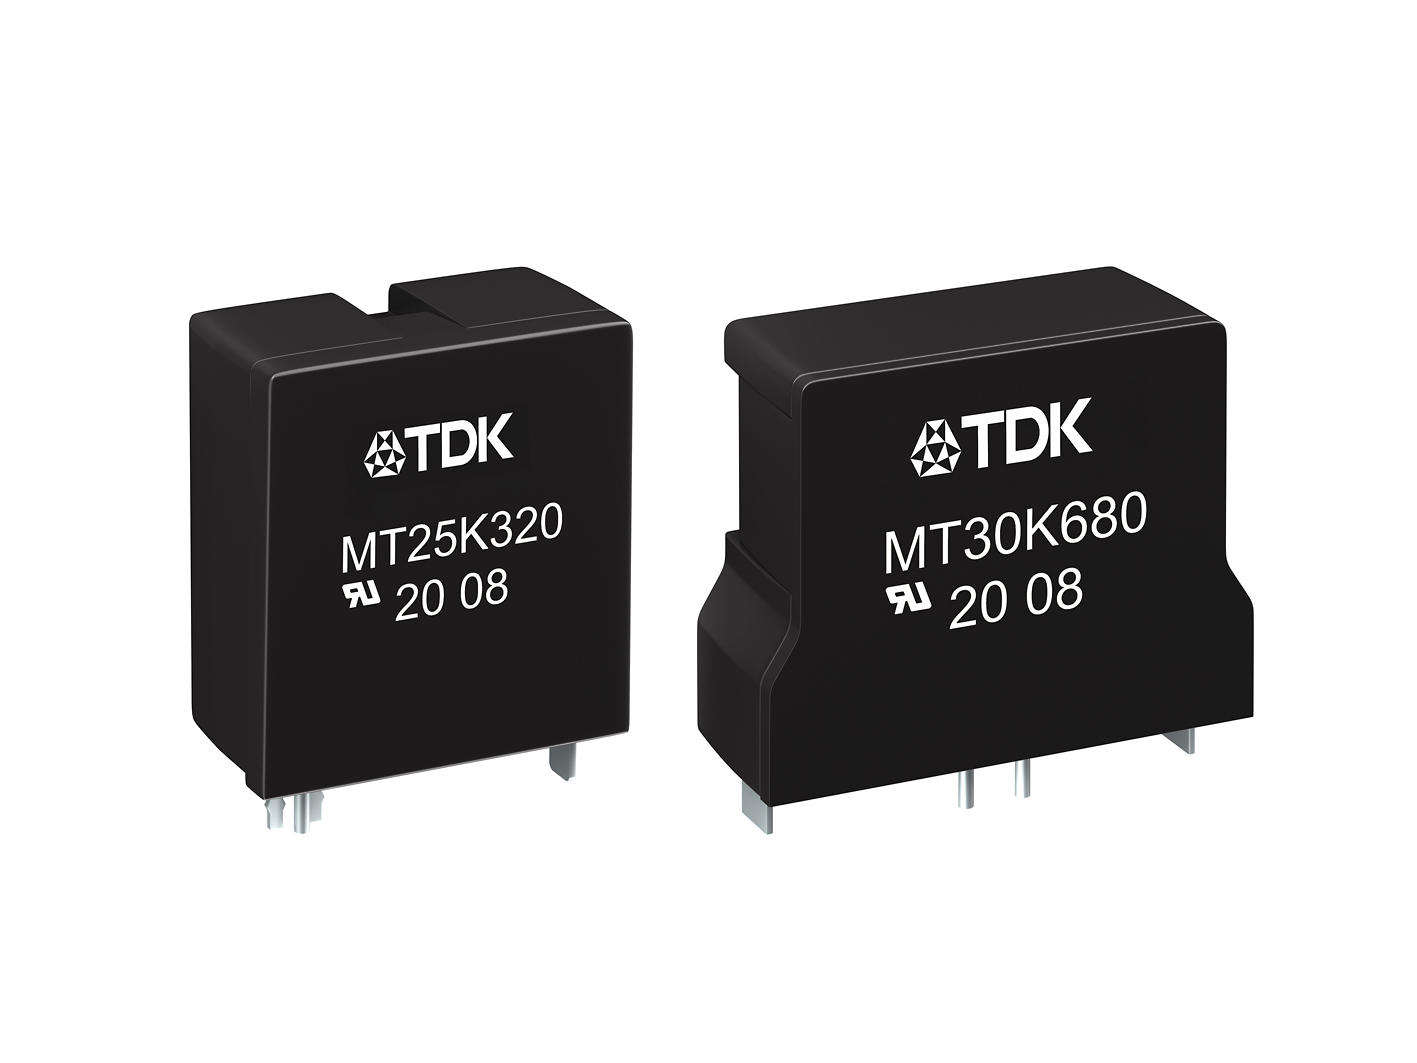 Varistors for Overvoltage Protection and Enhanced Monitoring